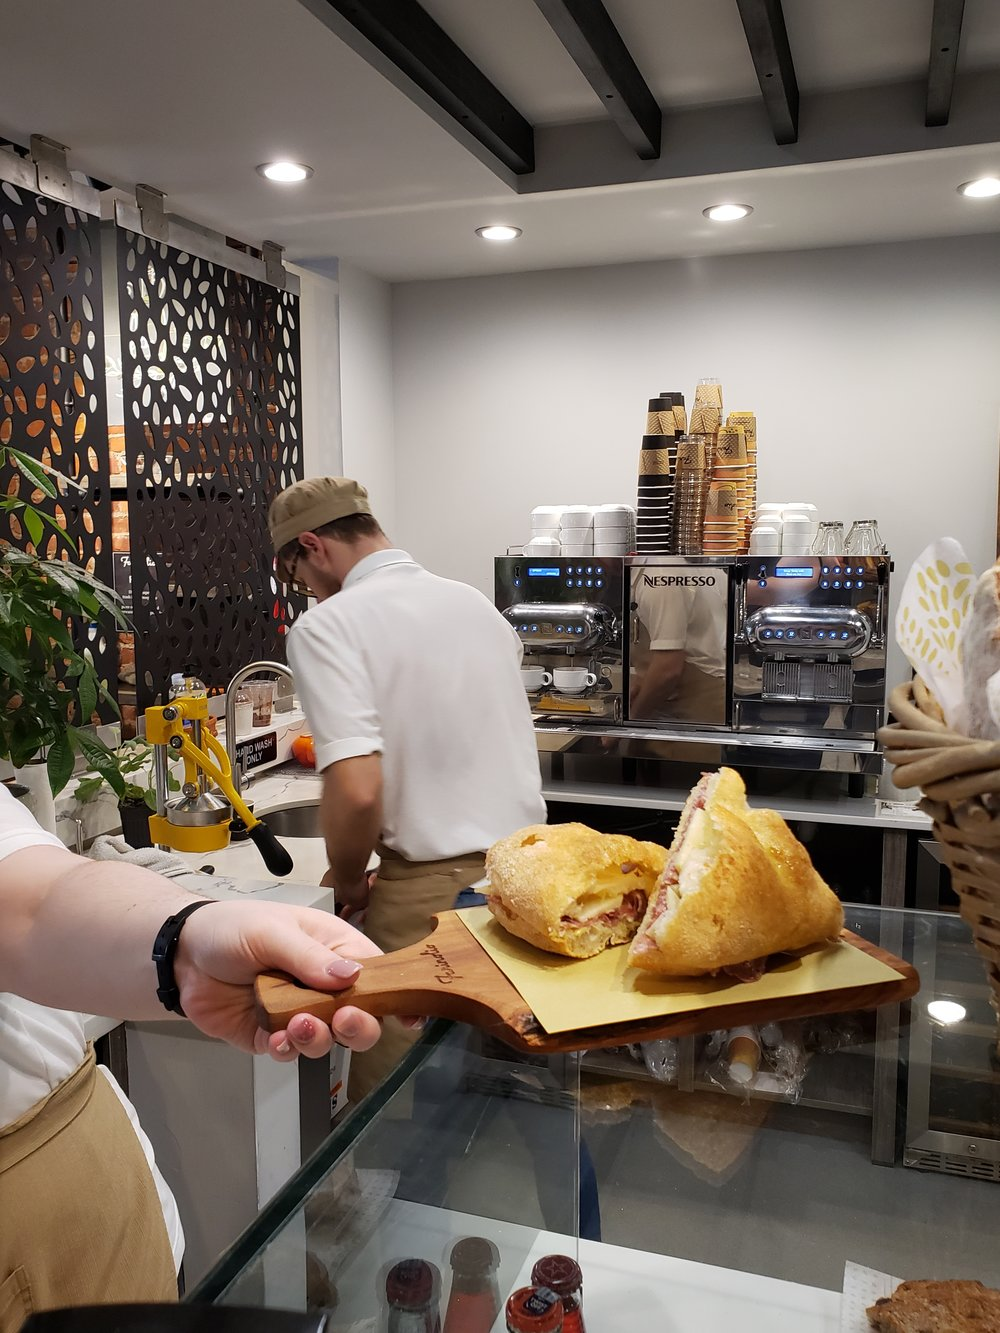 """Farinolio The Simple Taste of Italy Review - """"Next time you take a trip into Westfield, take a brief moment and take a quick step inside of Italy inside of Farinolio"""""""